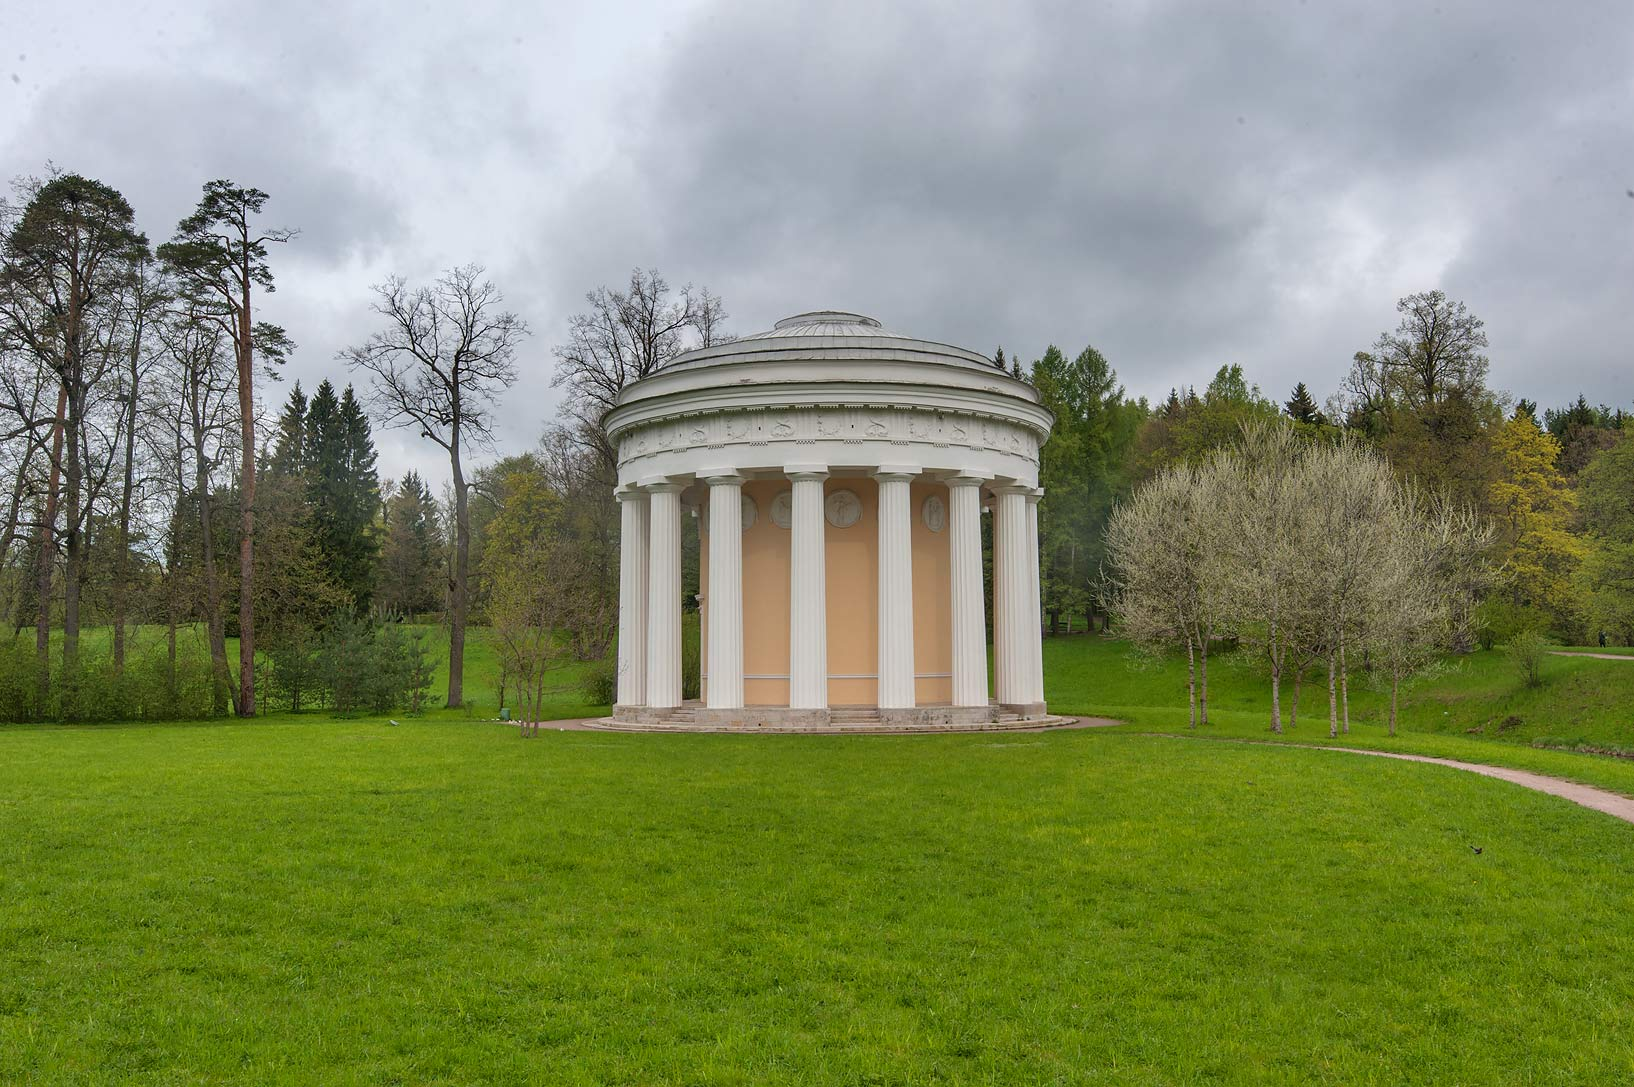 Friendship Temple (Khram Druzhby) in Pavlovsk...suburb of St.Petersburg, Russia